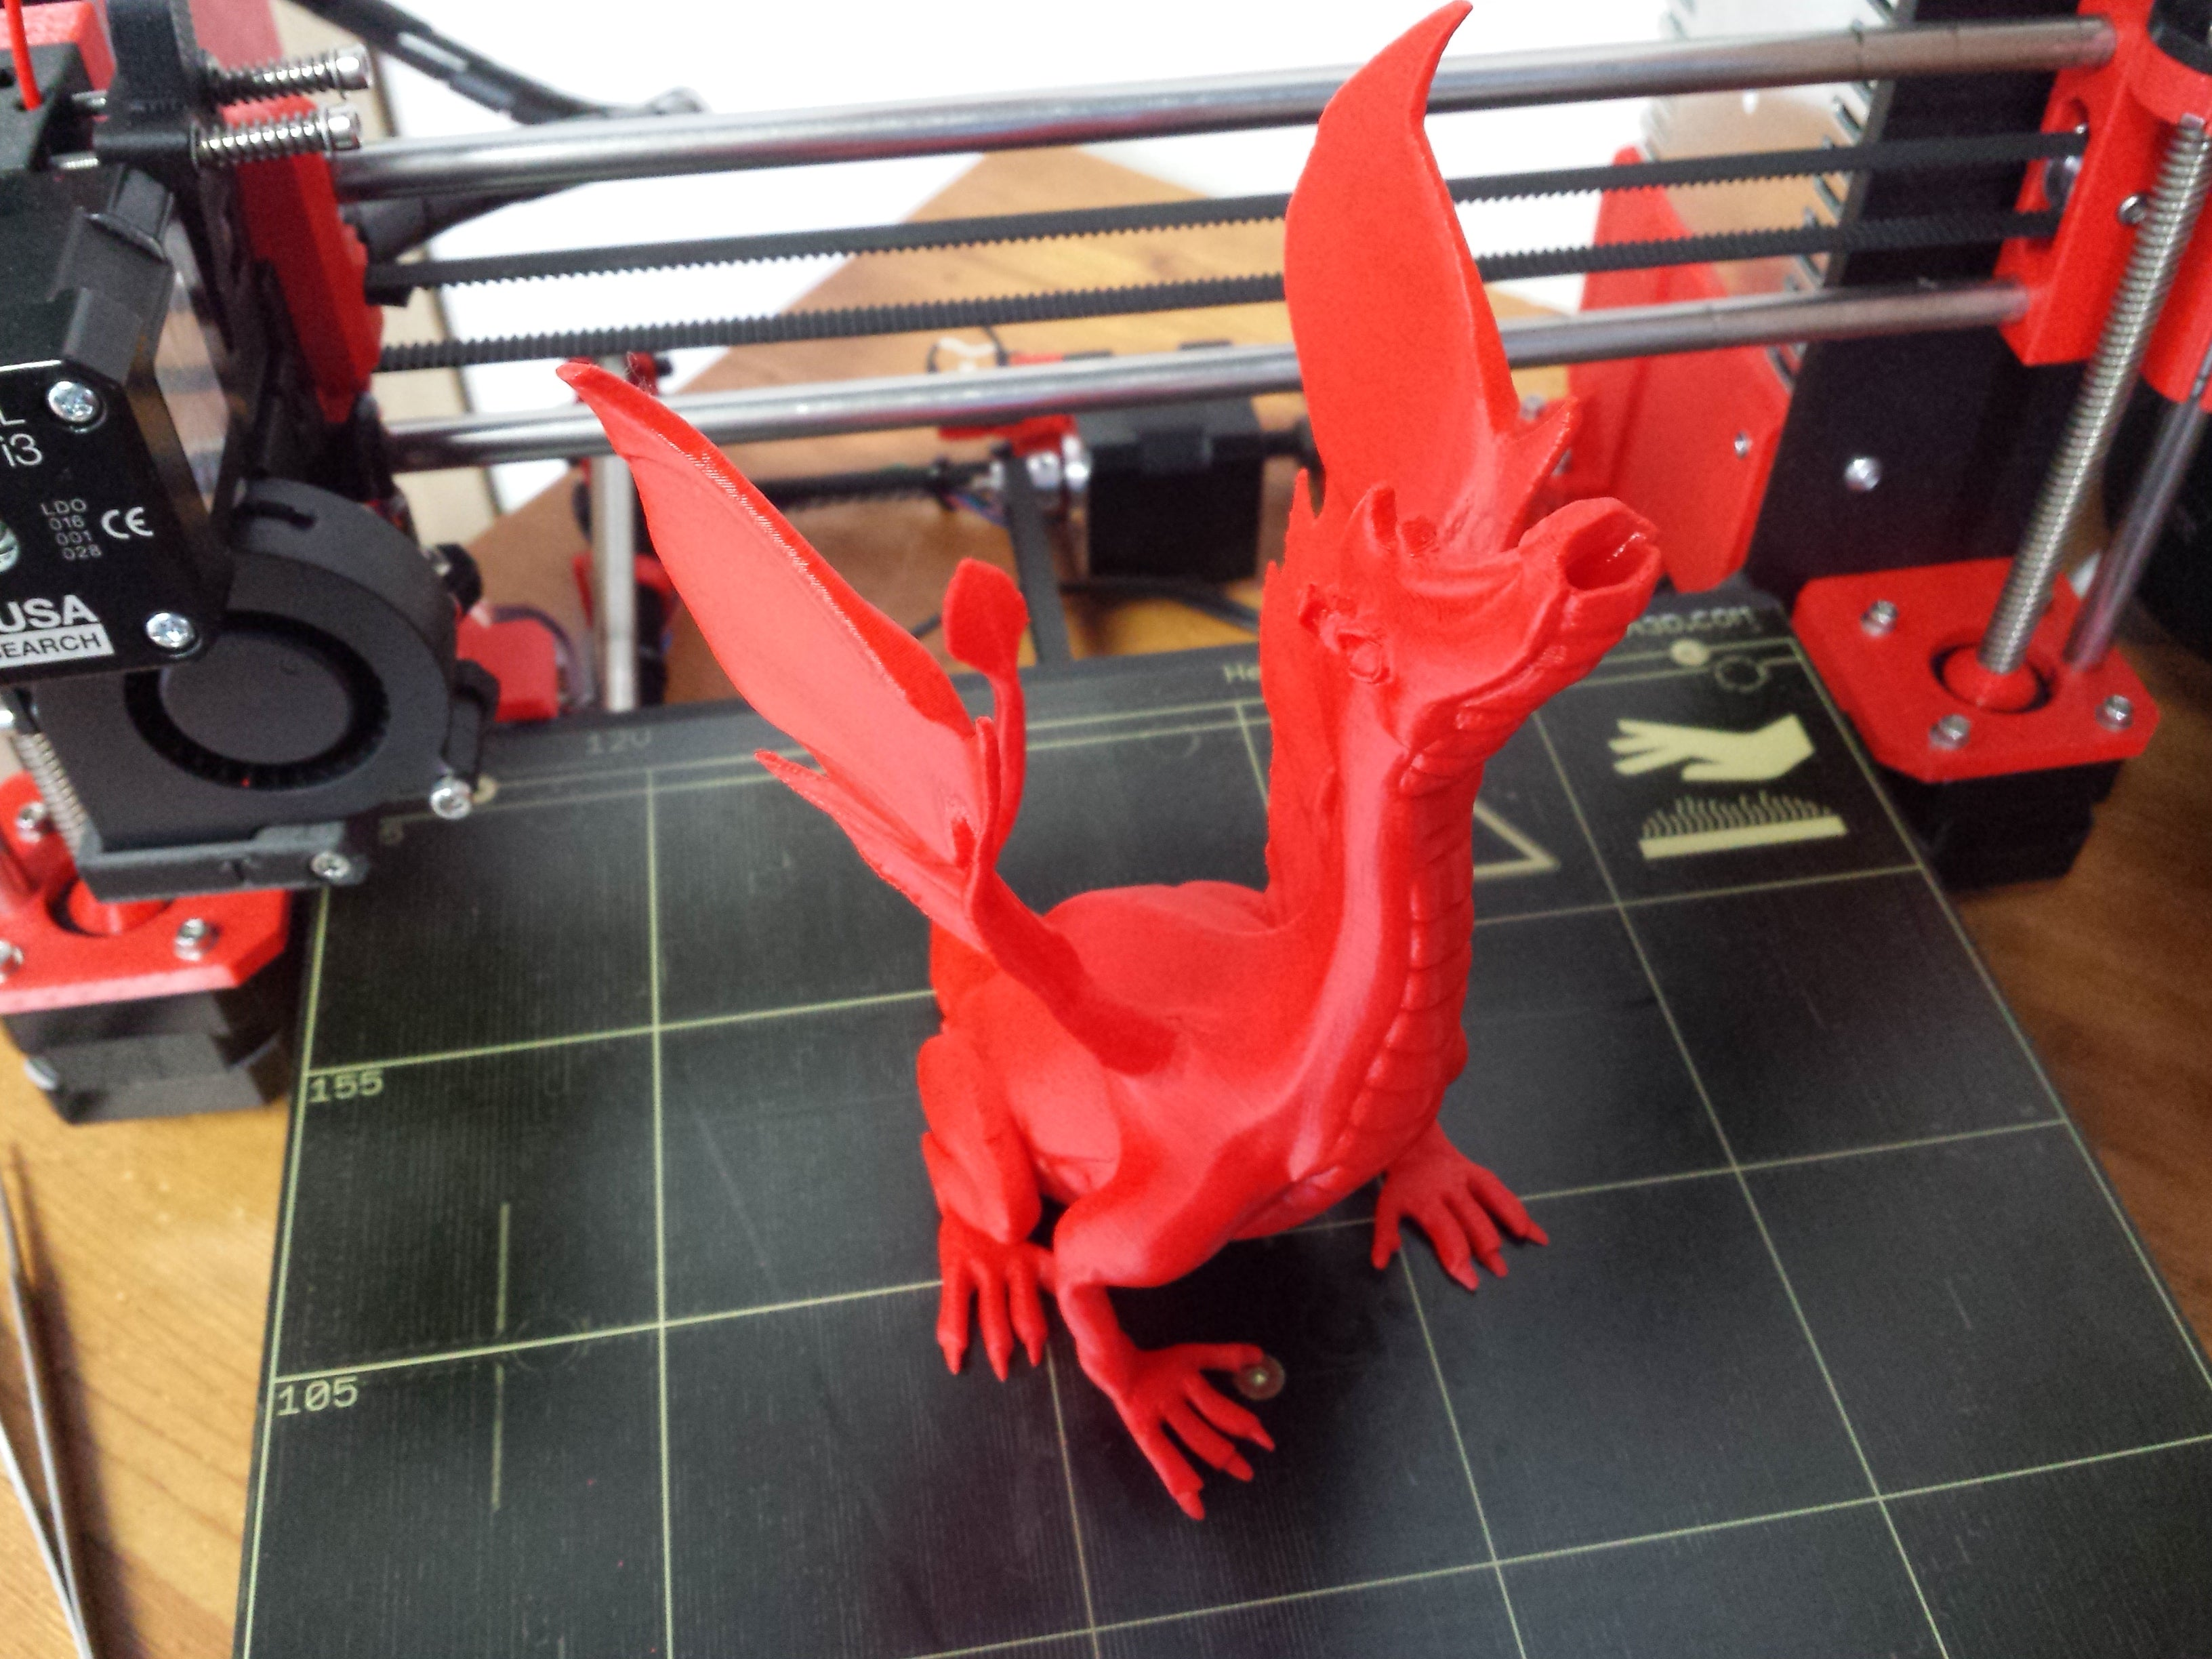 Picture of red dragon printed on Prusa i3 MK2 3D printer